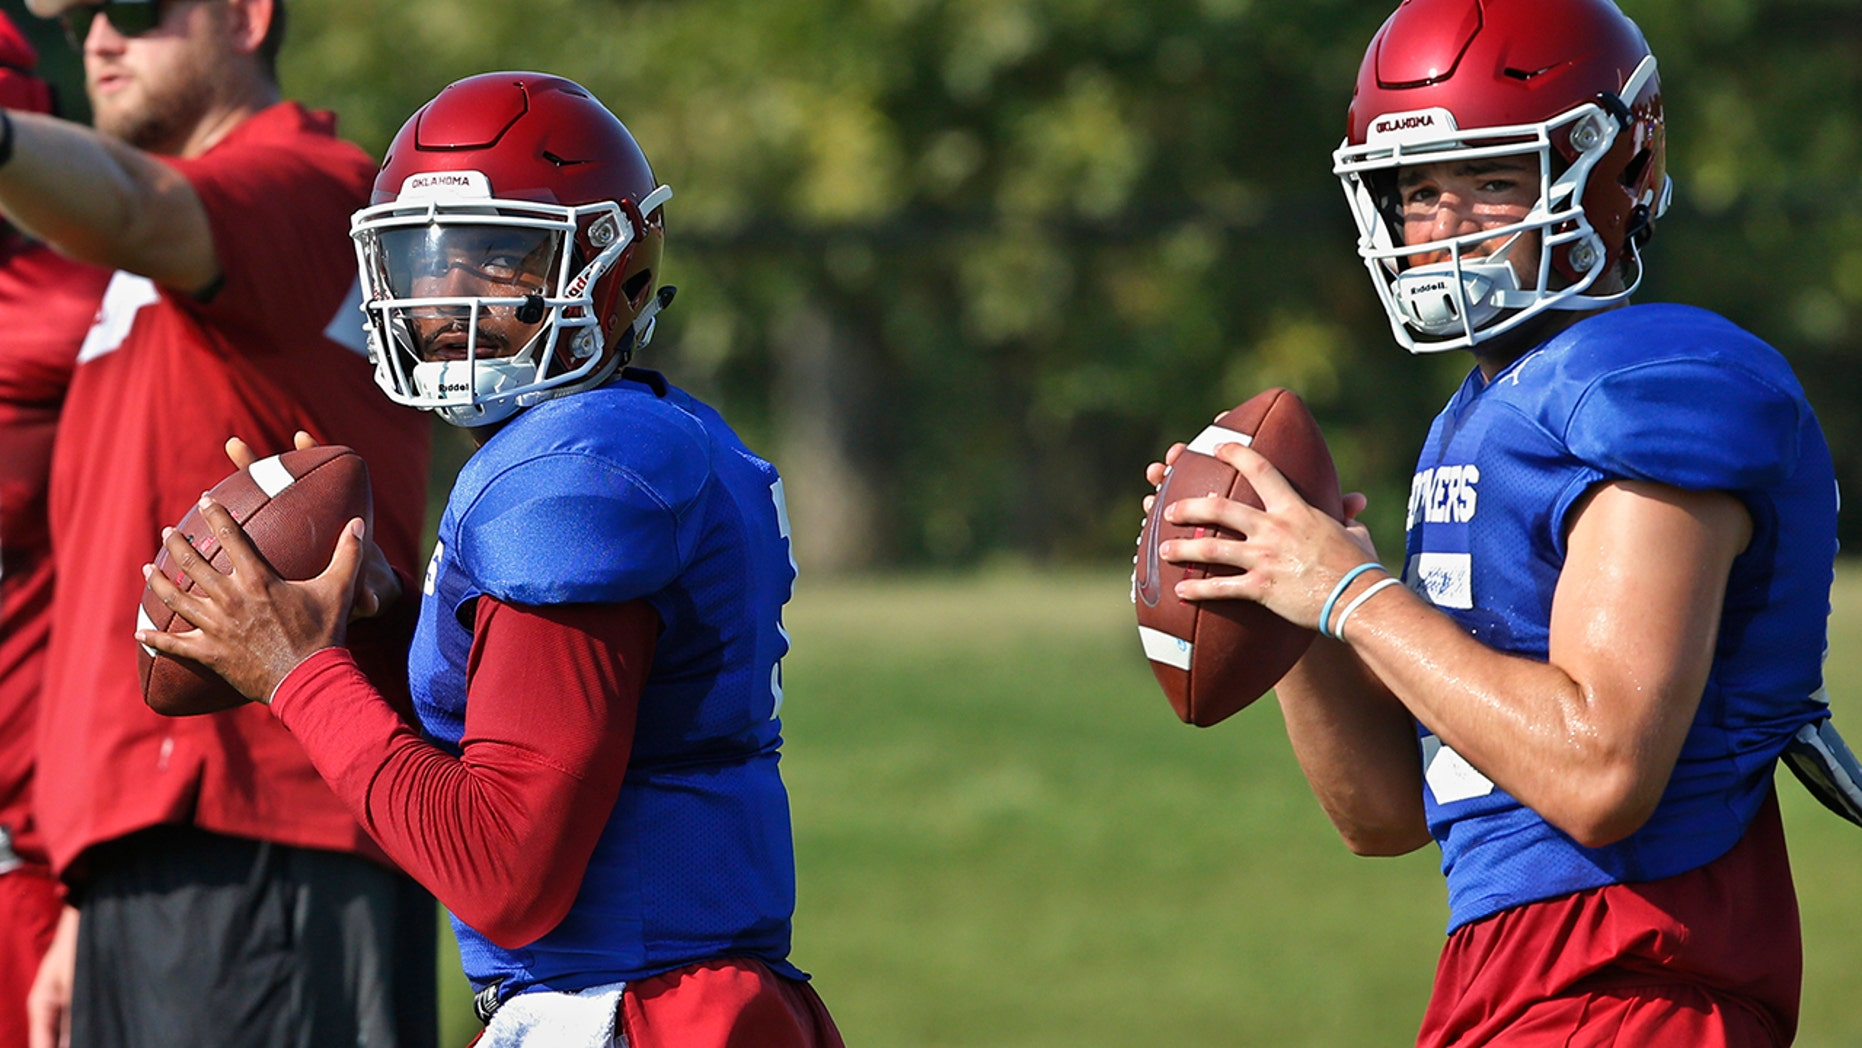 FILE - In this Monday, Aug. 5, 2019, file photo, Oklahoma quarterbacks Jalen Hurts, left, and Tanner Mordecai, right, throw during NCAA college football practice in Norman, Okla. Hurts is competing with Mordecai, a redshirt freshman, and Spencer Rattler, a true freshman, to become starting quarterback. (AP Photo/Sue Ogrocki, File)